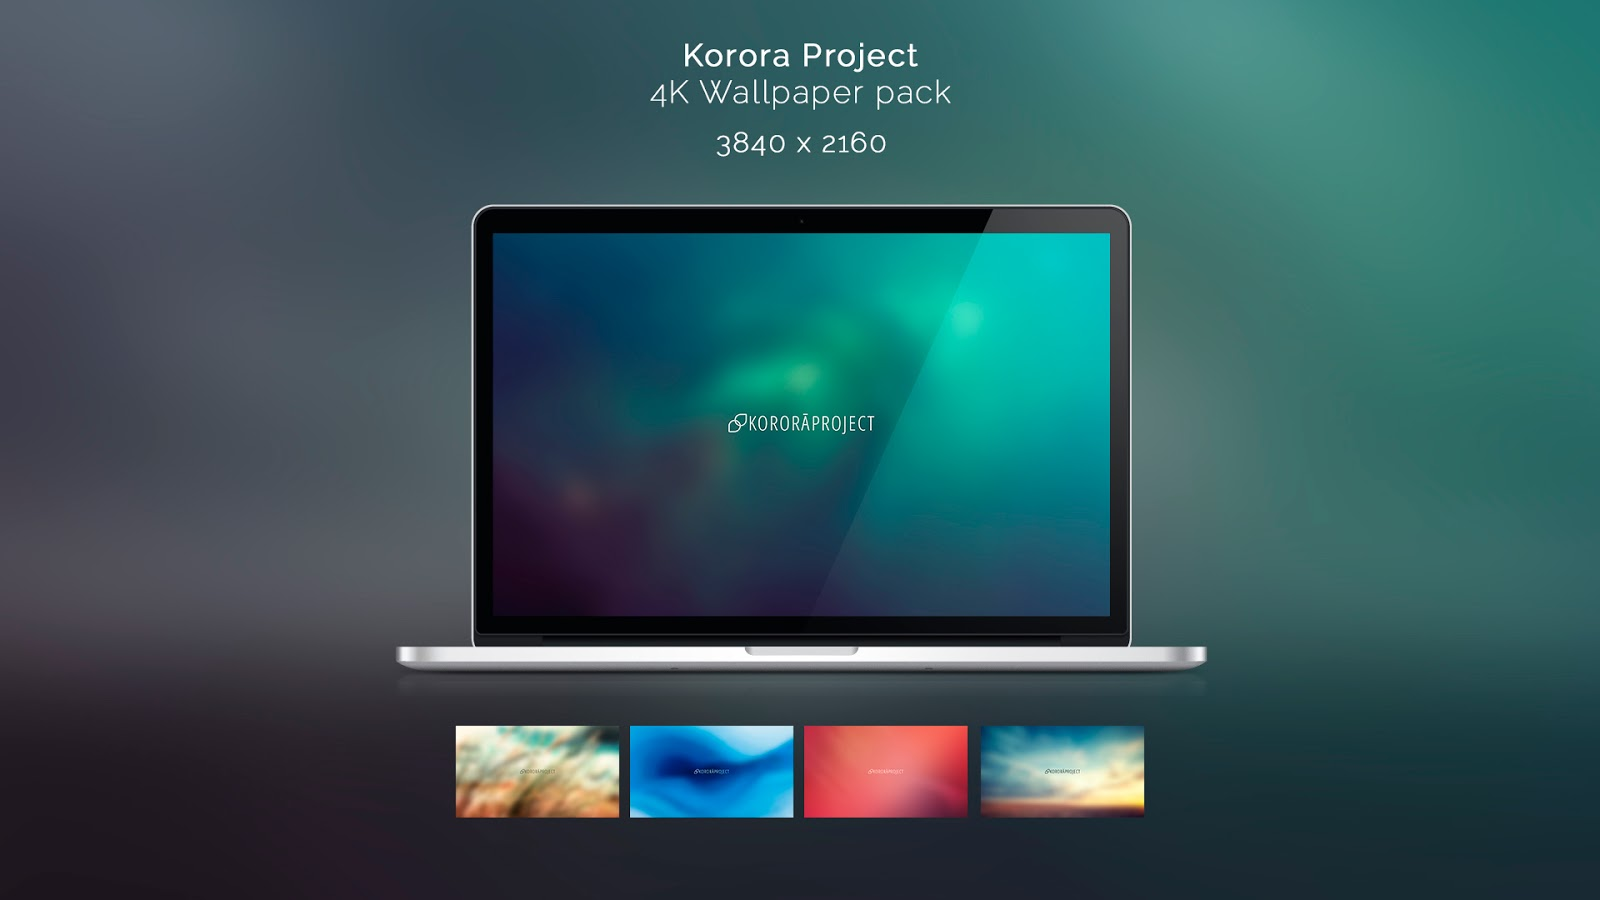 Korora Project 4k Wallpaper Pack Windows10 Themes I